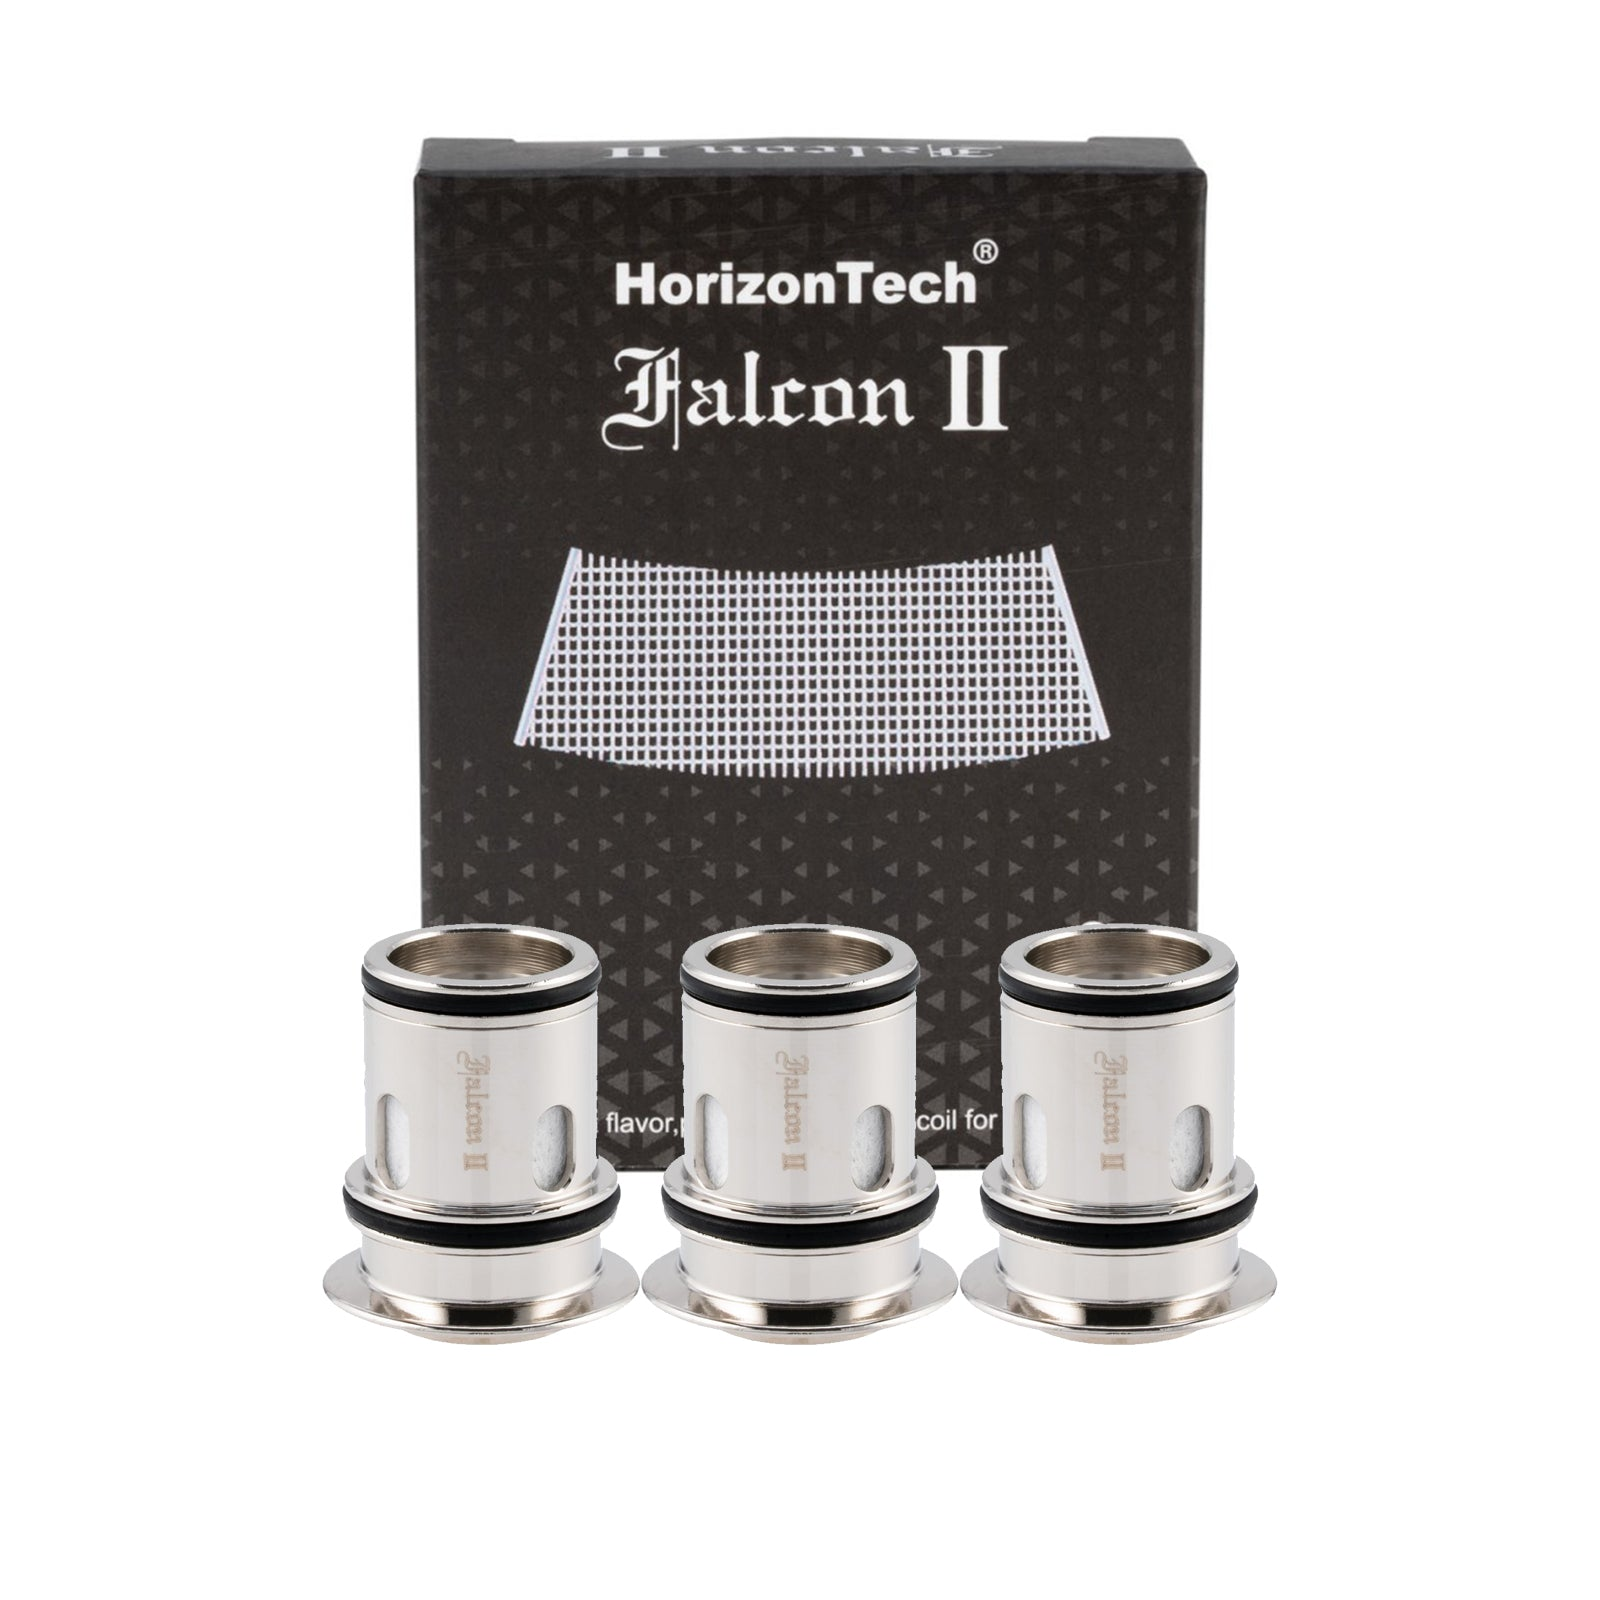 Horizon Tech Falcon 2 Mesh Coil 0.14ohm - 3 Pack